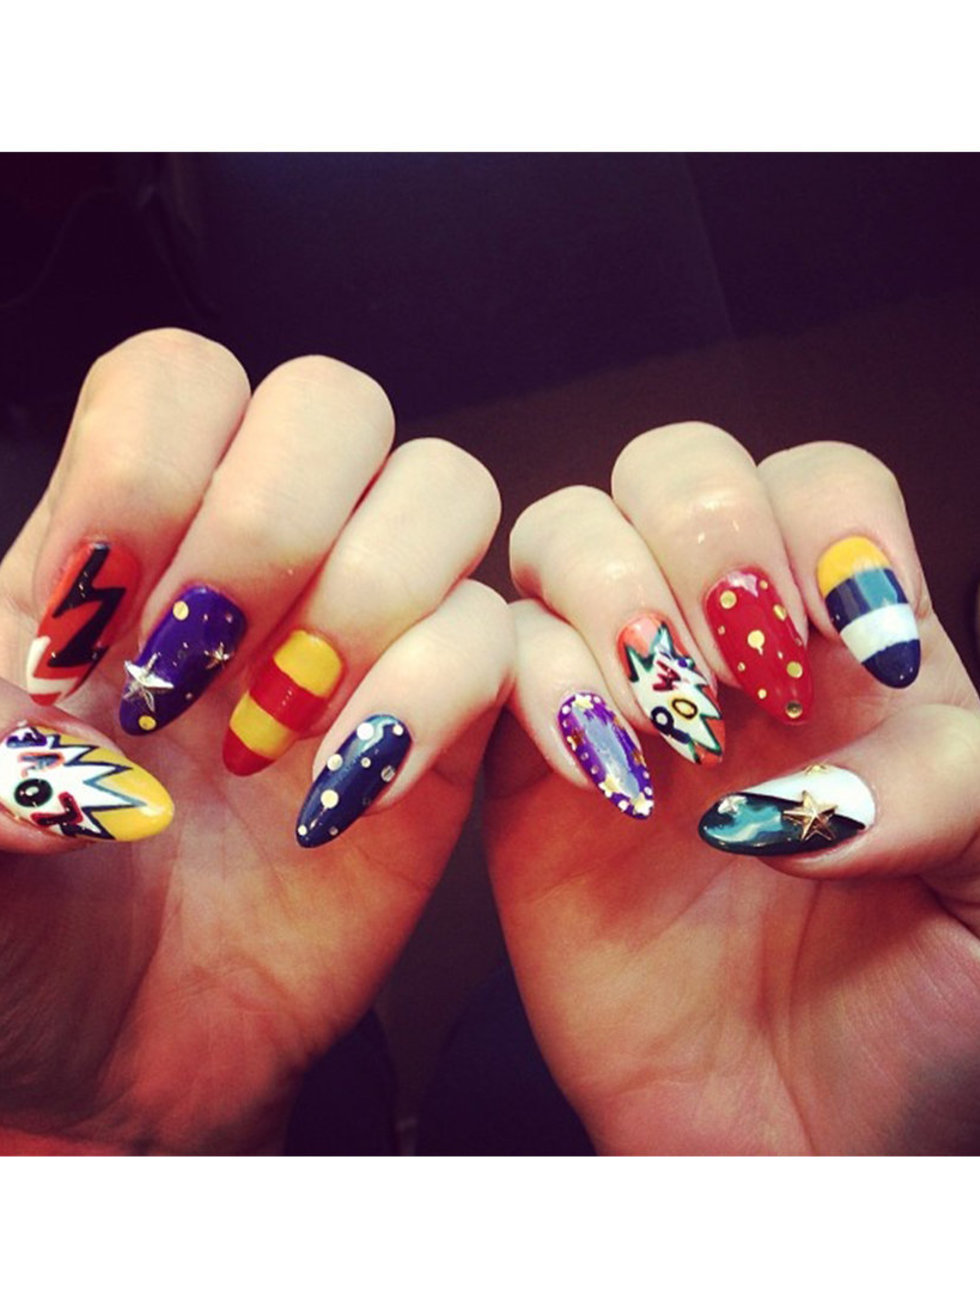 Nail Art Ideas » Nail Art Gallery Magazine - Pictures of Nail Art ...